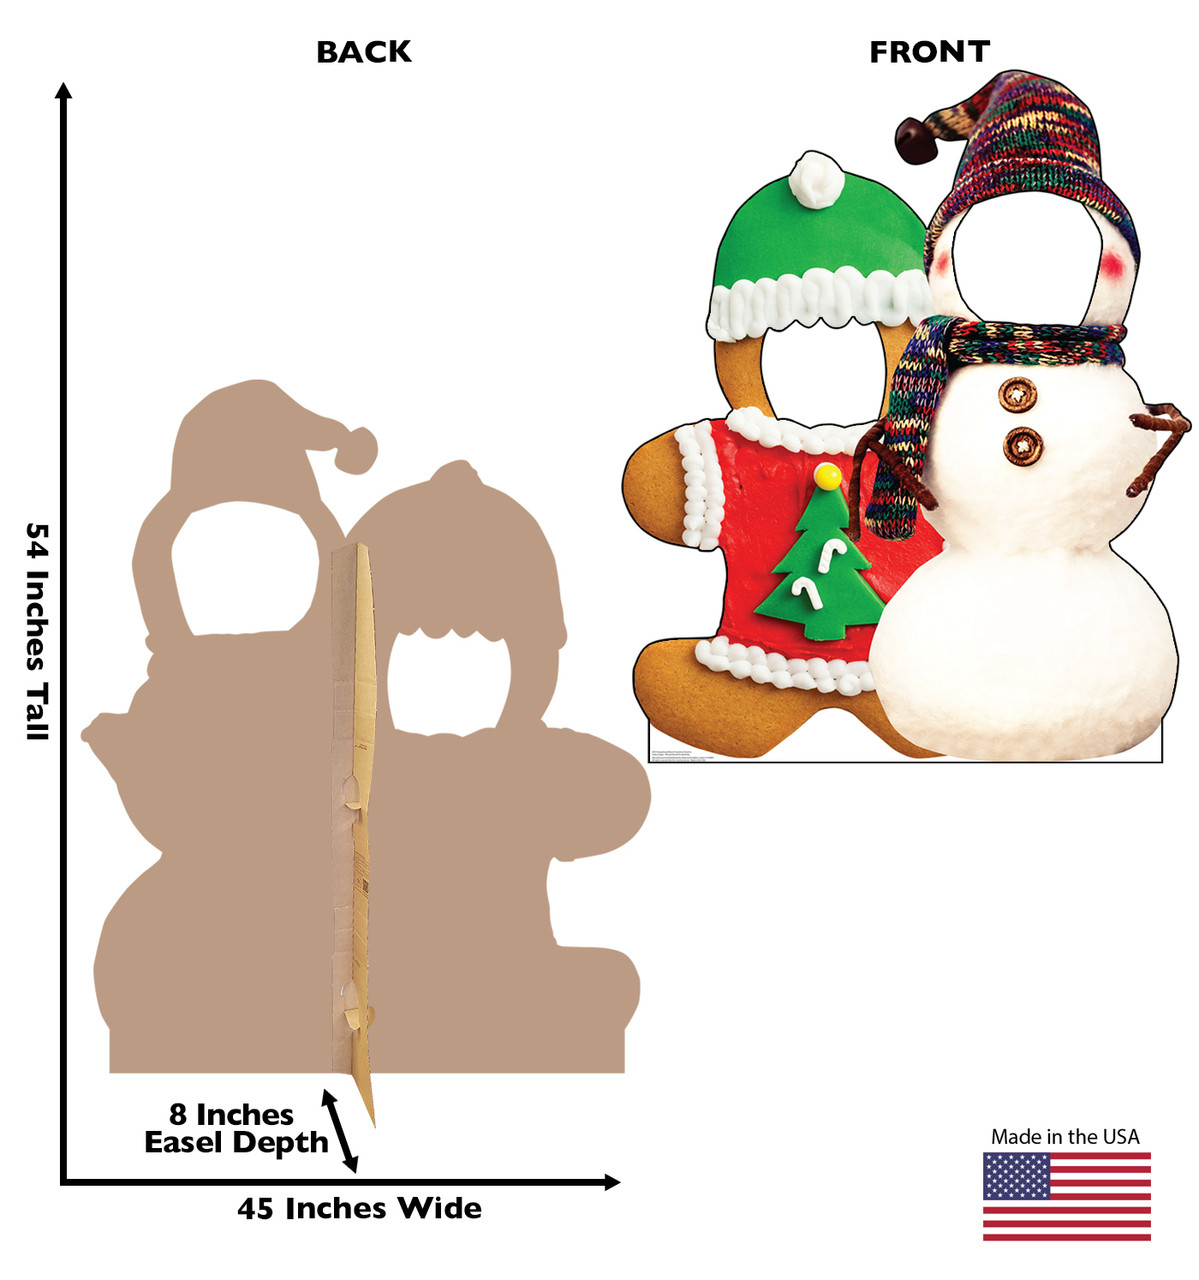 Life-size cardboard standee of Gingerbread & Snowman Stand-in. View of back and front of standee with dimensions.